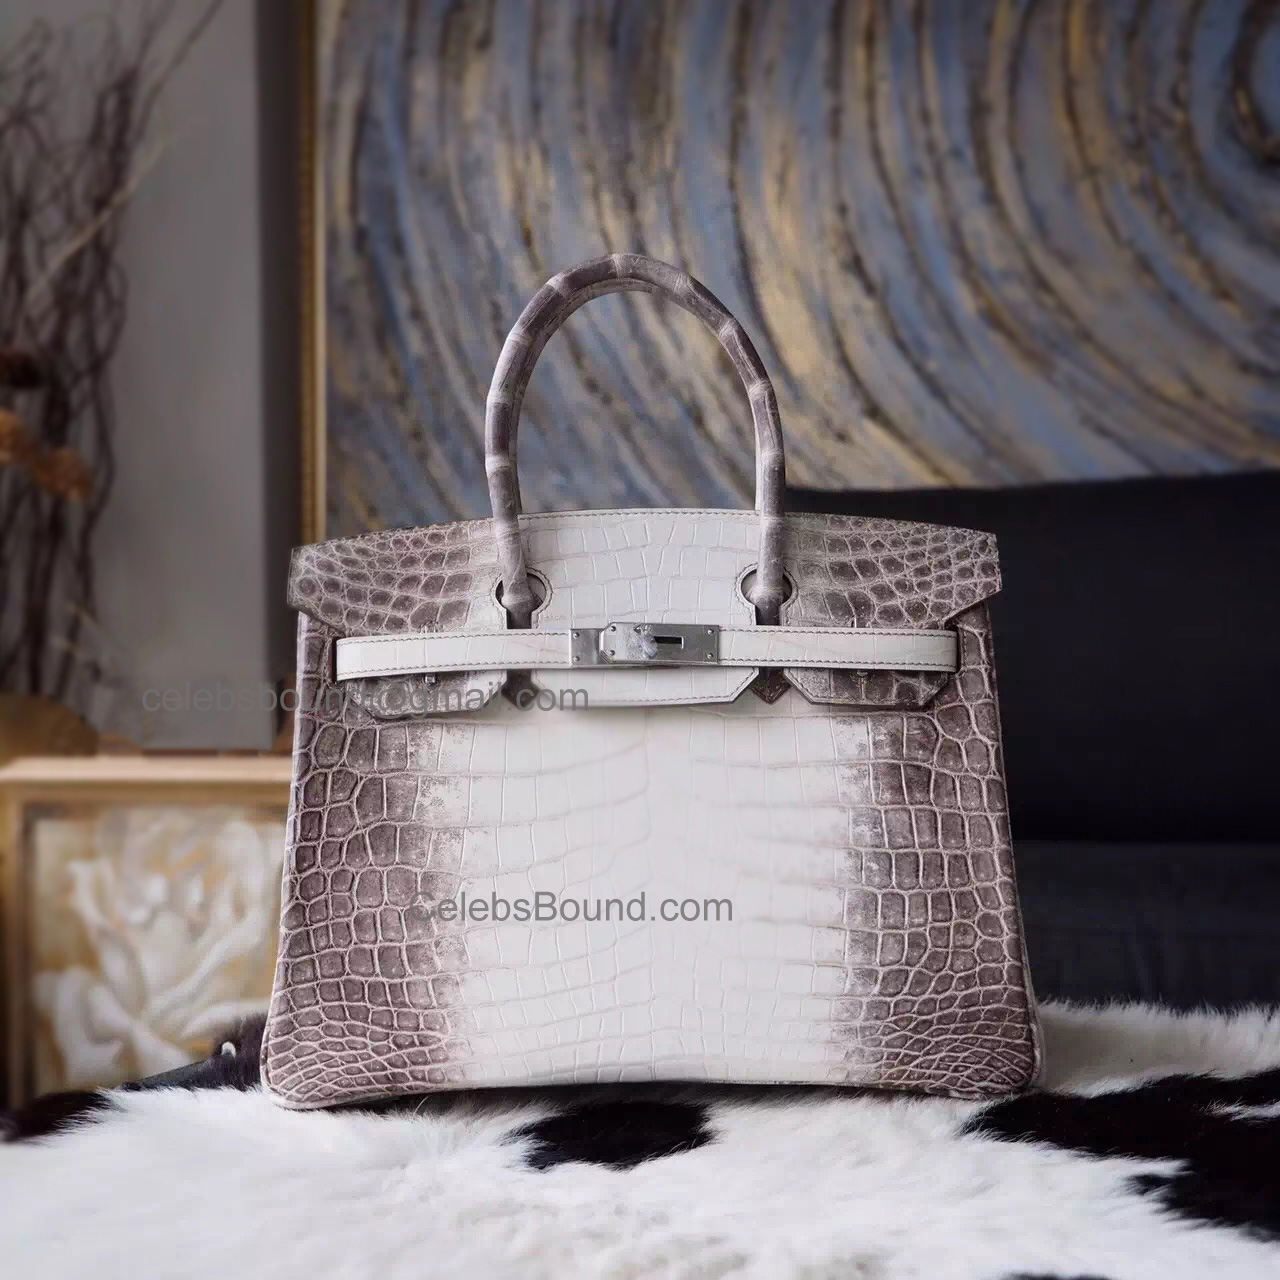 379002df9aed Hand Stitched Hermes Birkin 30 Bag in Himalayan Croc SHW